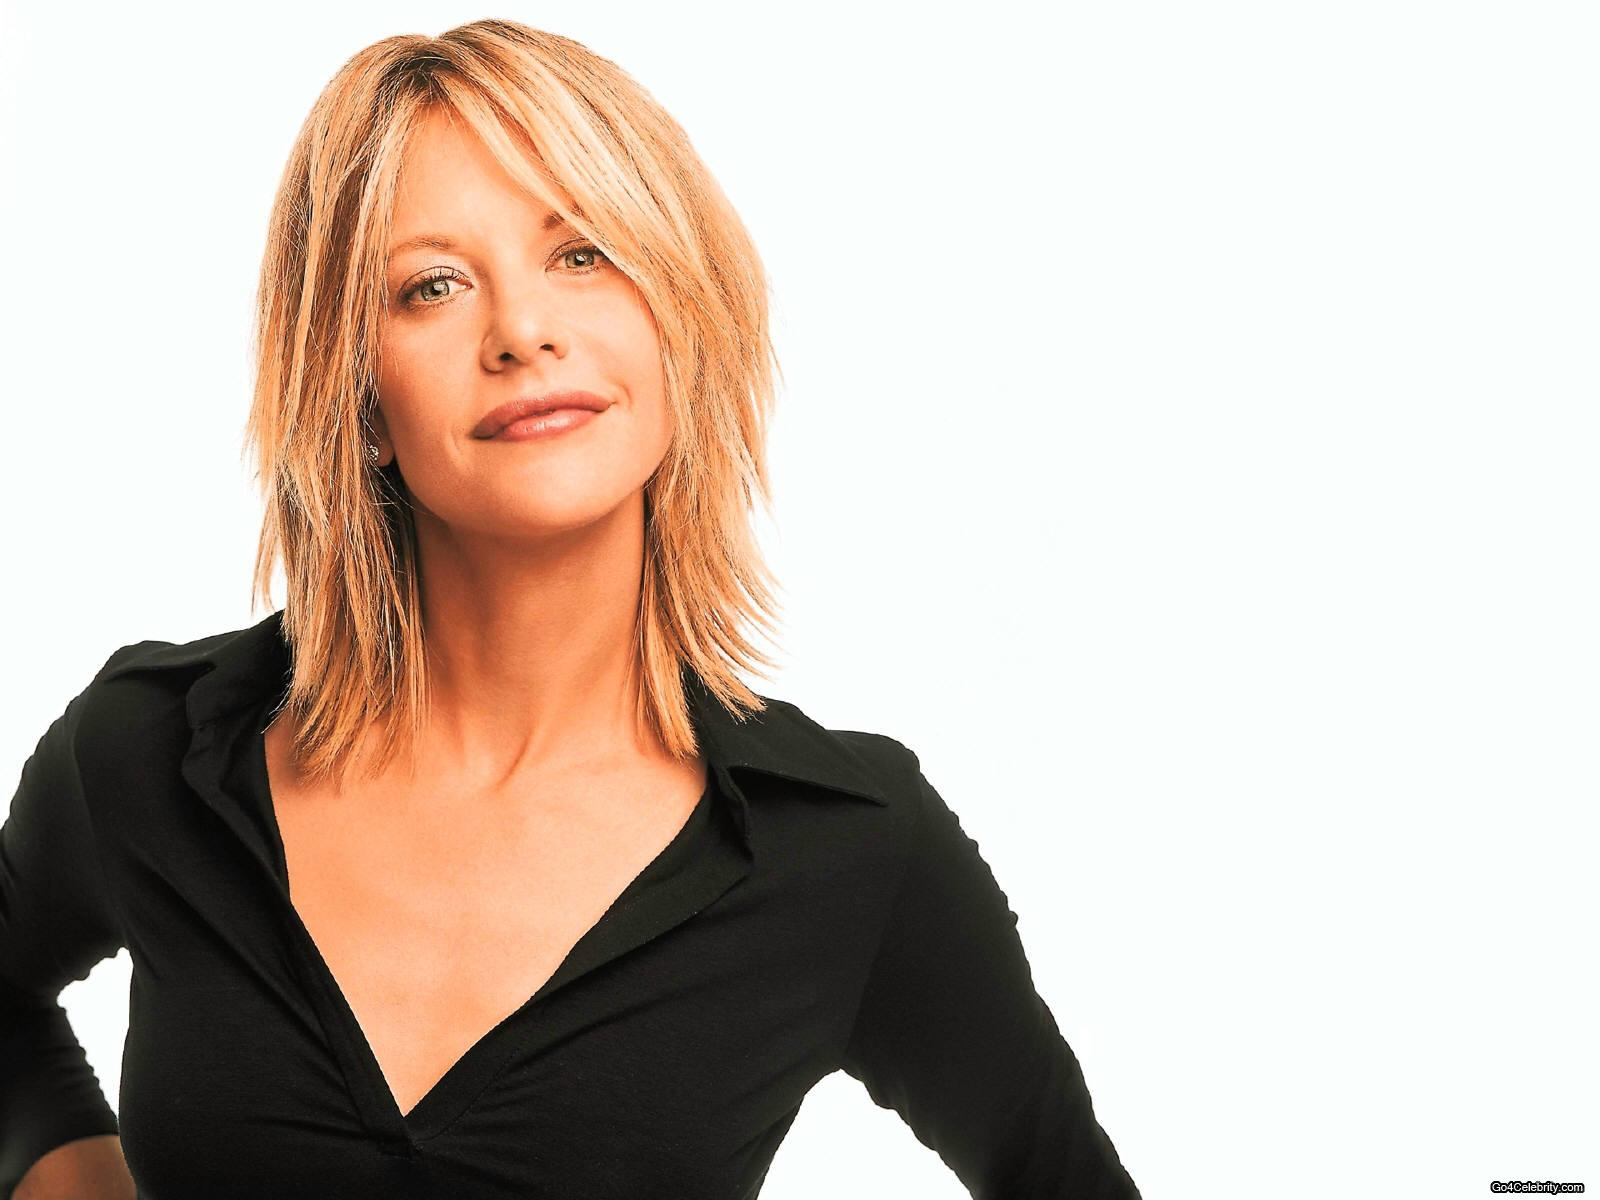 Meg Ryan Wallpapers High Resolution And Quality Download